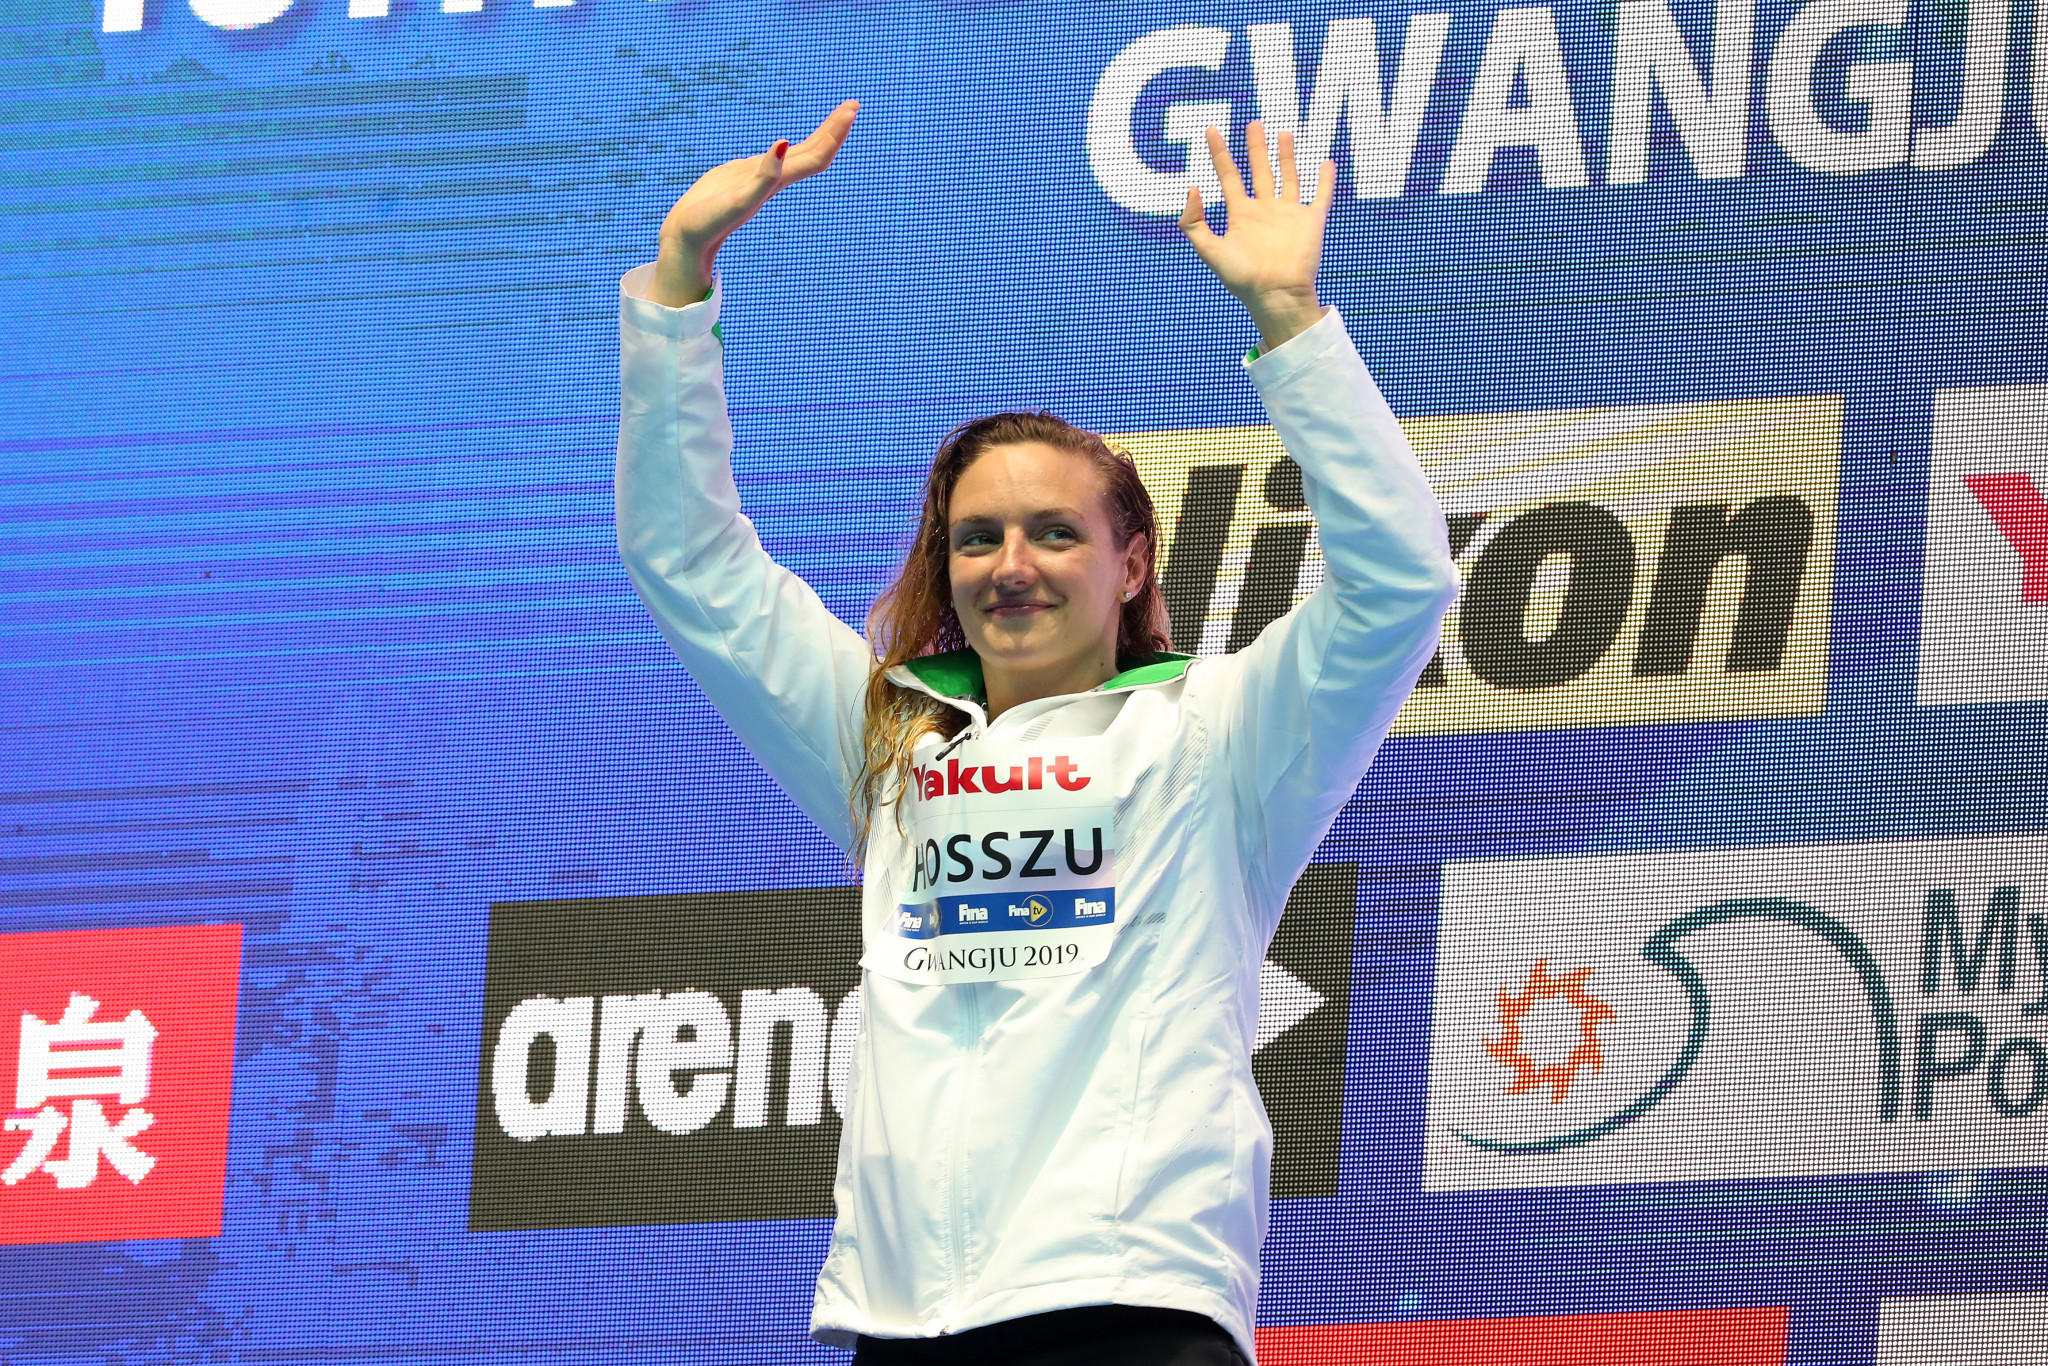 Three-times Olympic champion and multiple World Championships gold medallist Katinka Hosszú was among a group of swimmers who pressured Tamás Gyárfás to resign from his role as Hungarian Swimming Federation President in 2016 ©Getty Images